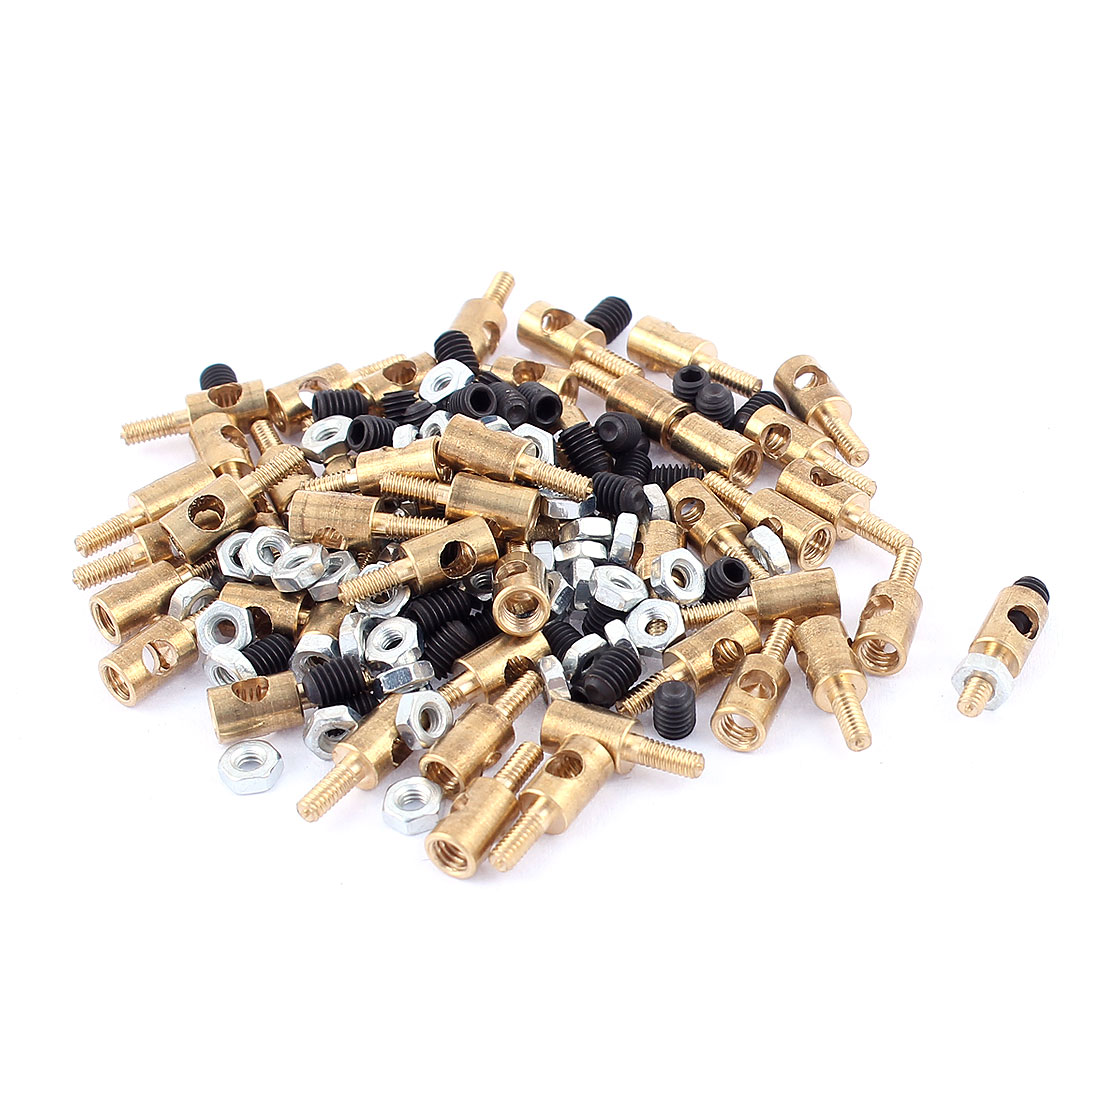 50pcs-4mm-x-2-5mm-Pushrod-Linkage-Stopper-Metal-for-RC-Model-w-Nuts